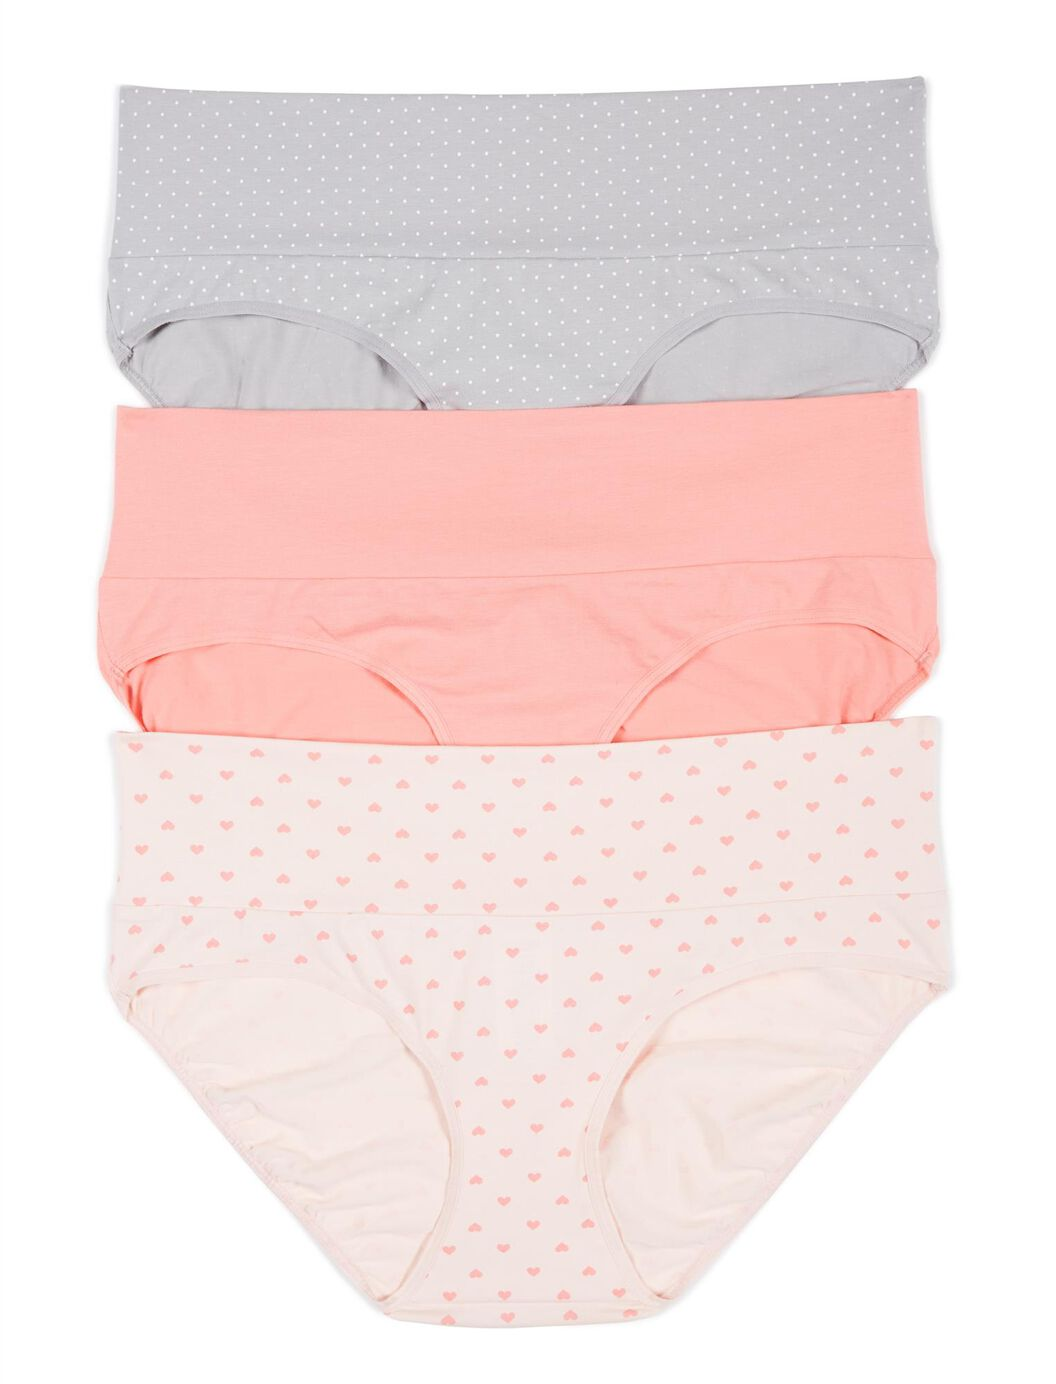 Maternity Fold Over Panties (3 Pack)- Dot/Heart at Motherhood Maternity in Victor, NY | Tuggl